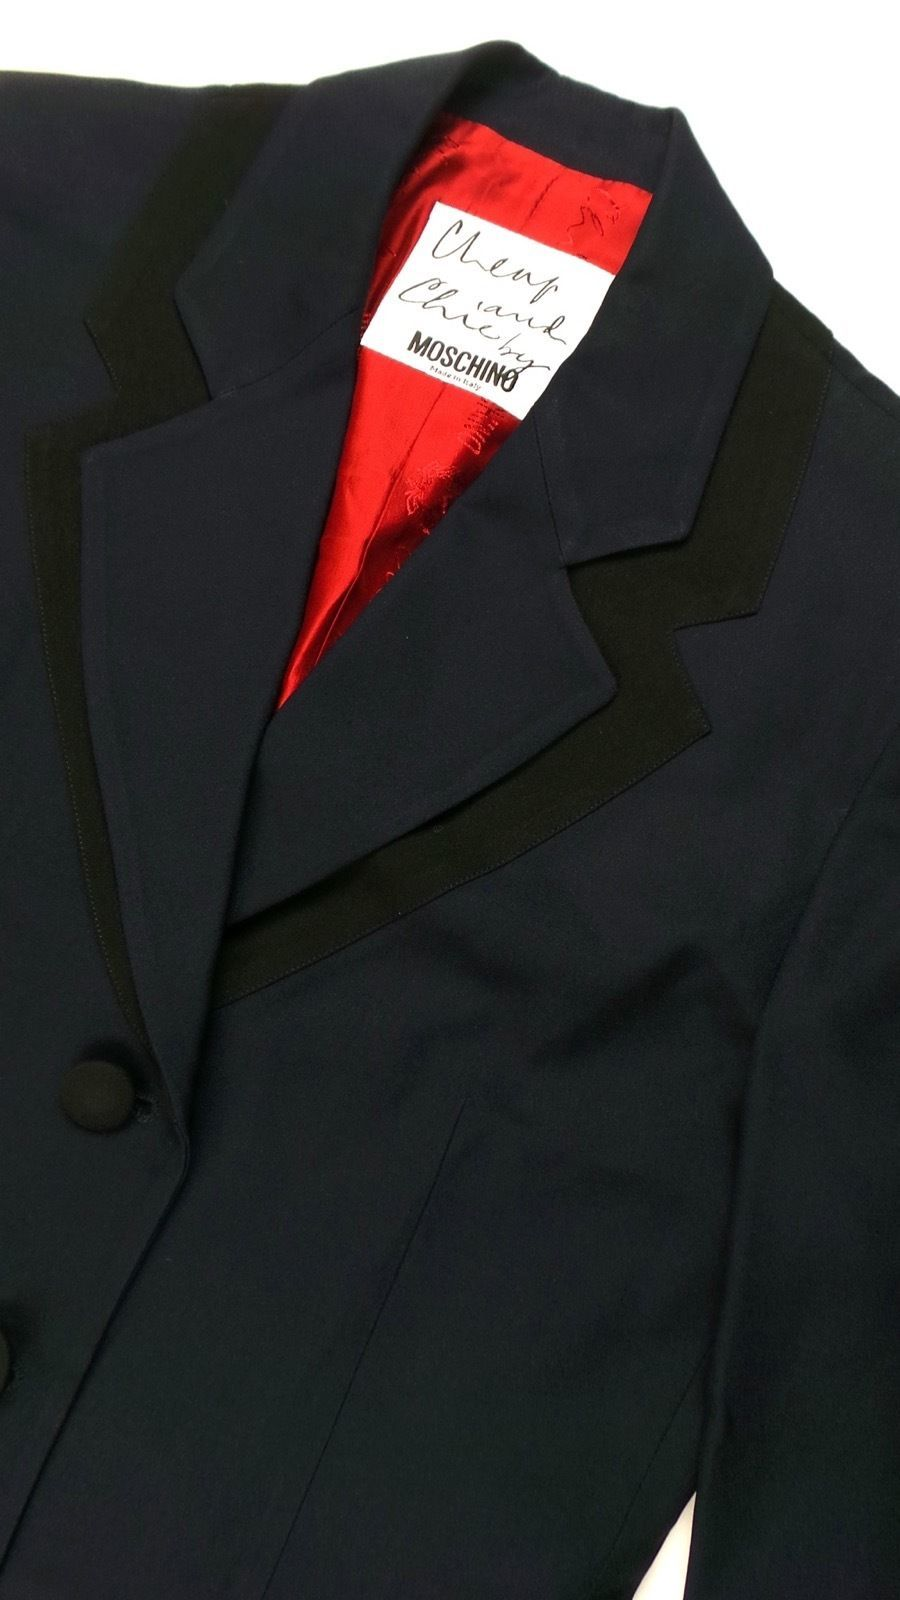 US $175.00 Pre-owned in Clothing, Shoes & Accessories, Women's Clothing, Suits & Blazers